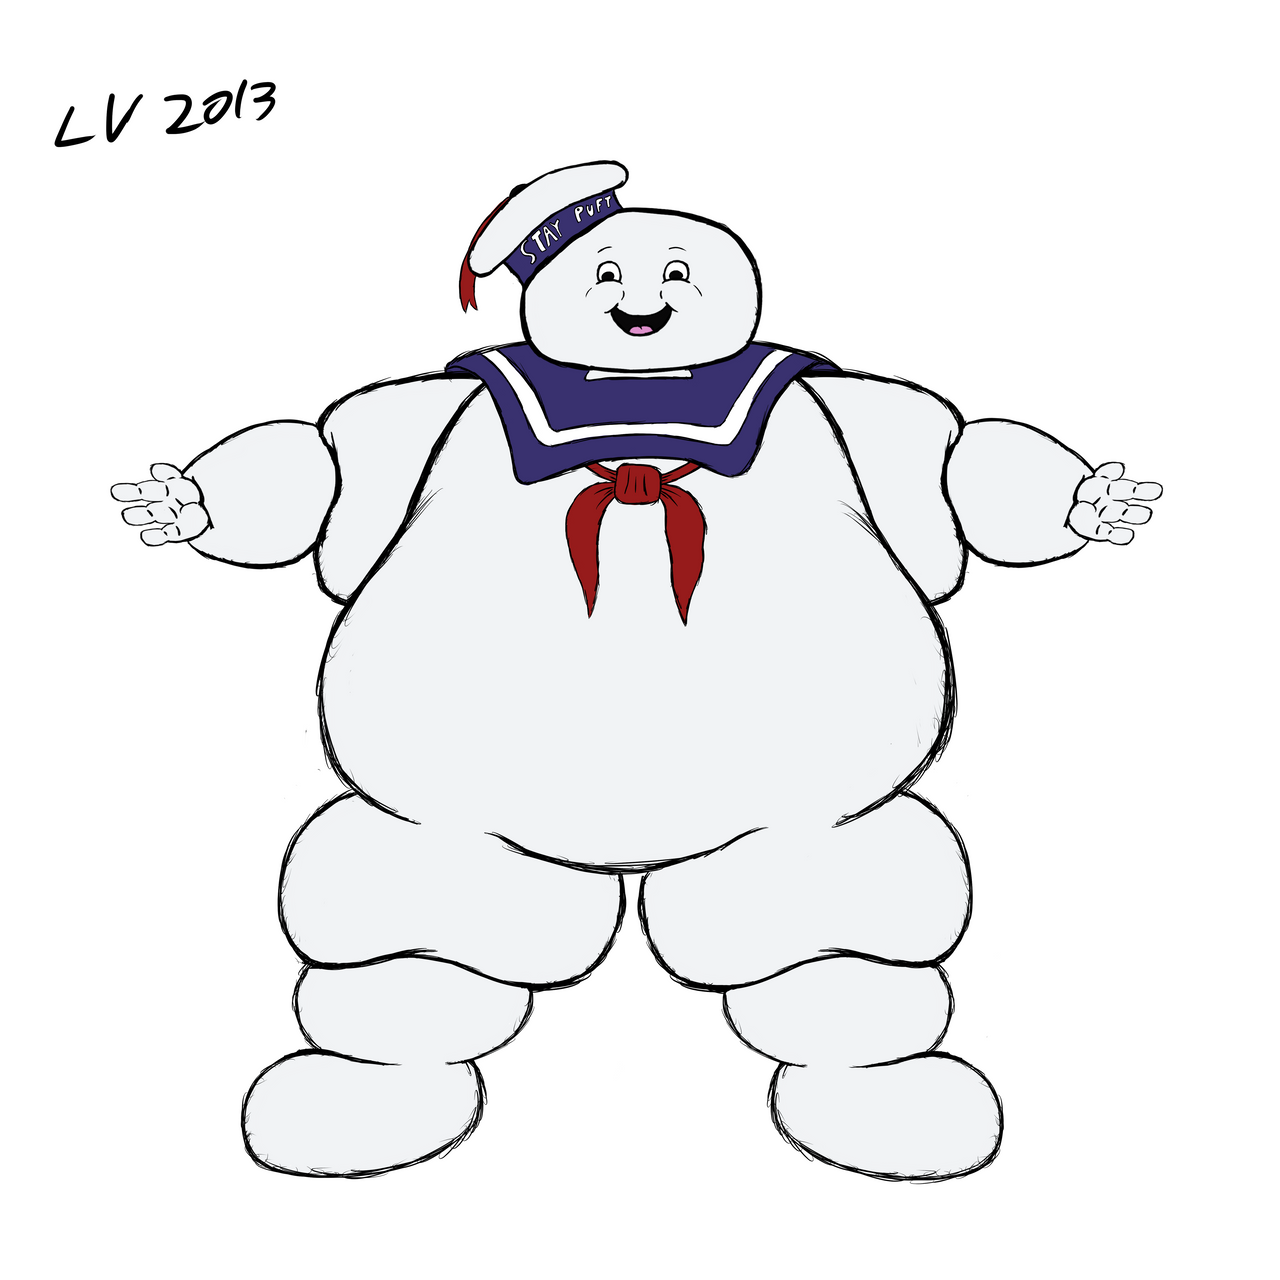 Mr stay puft by lordvegeta300 on deviantart for Stay puft coloring page